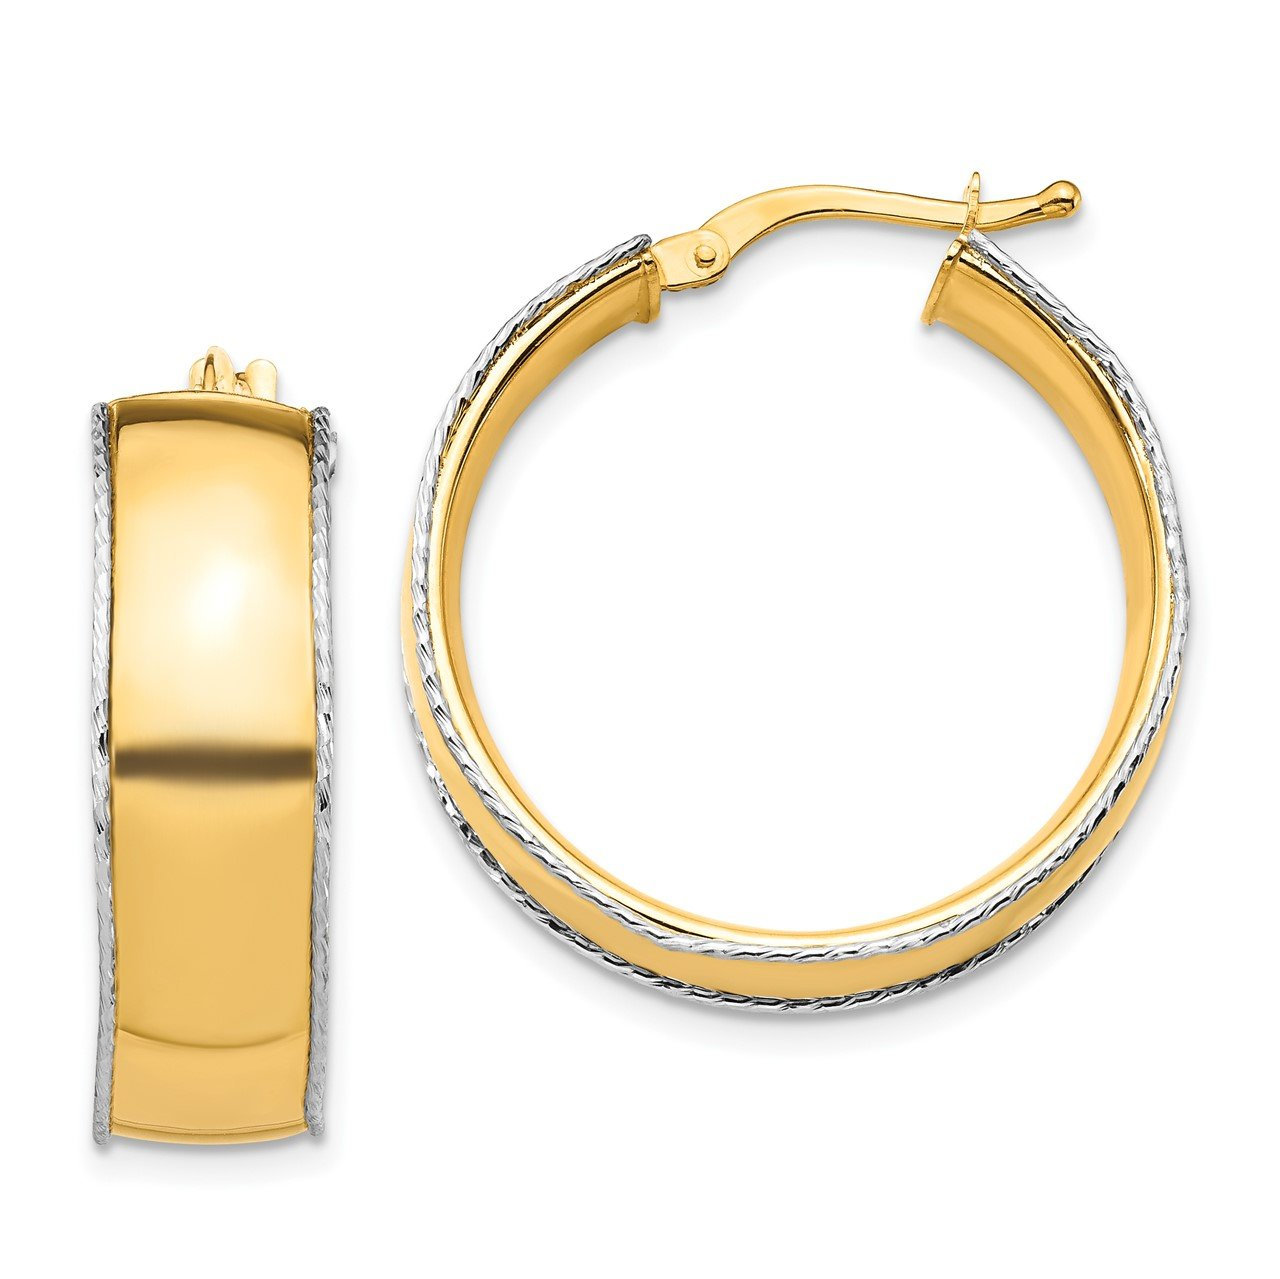 14K Yellow and White Gold 8x25mm D/C Edge Hoop Earrings